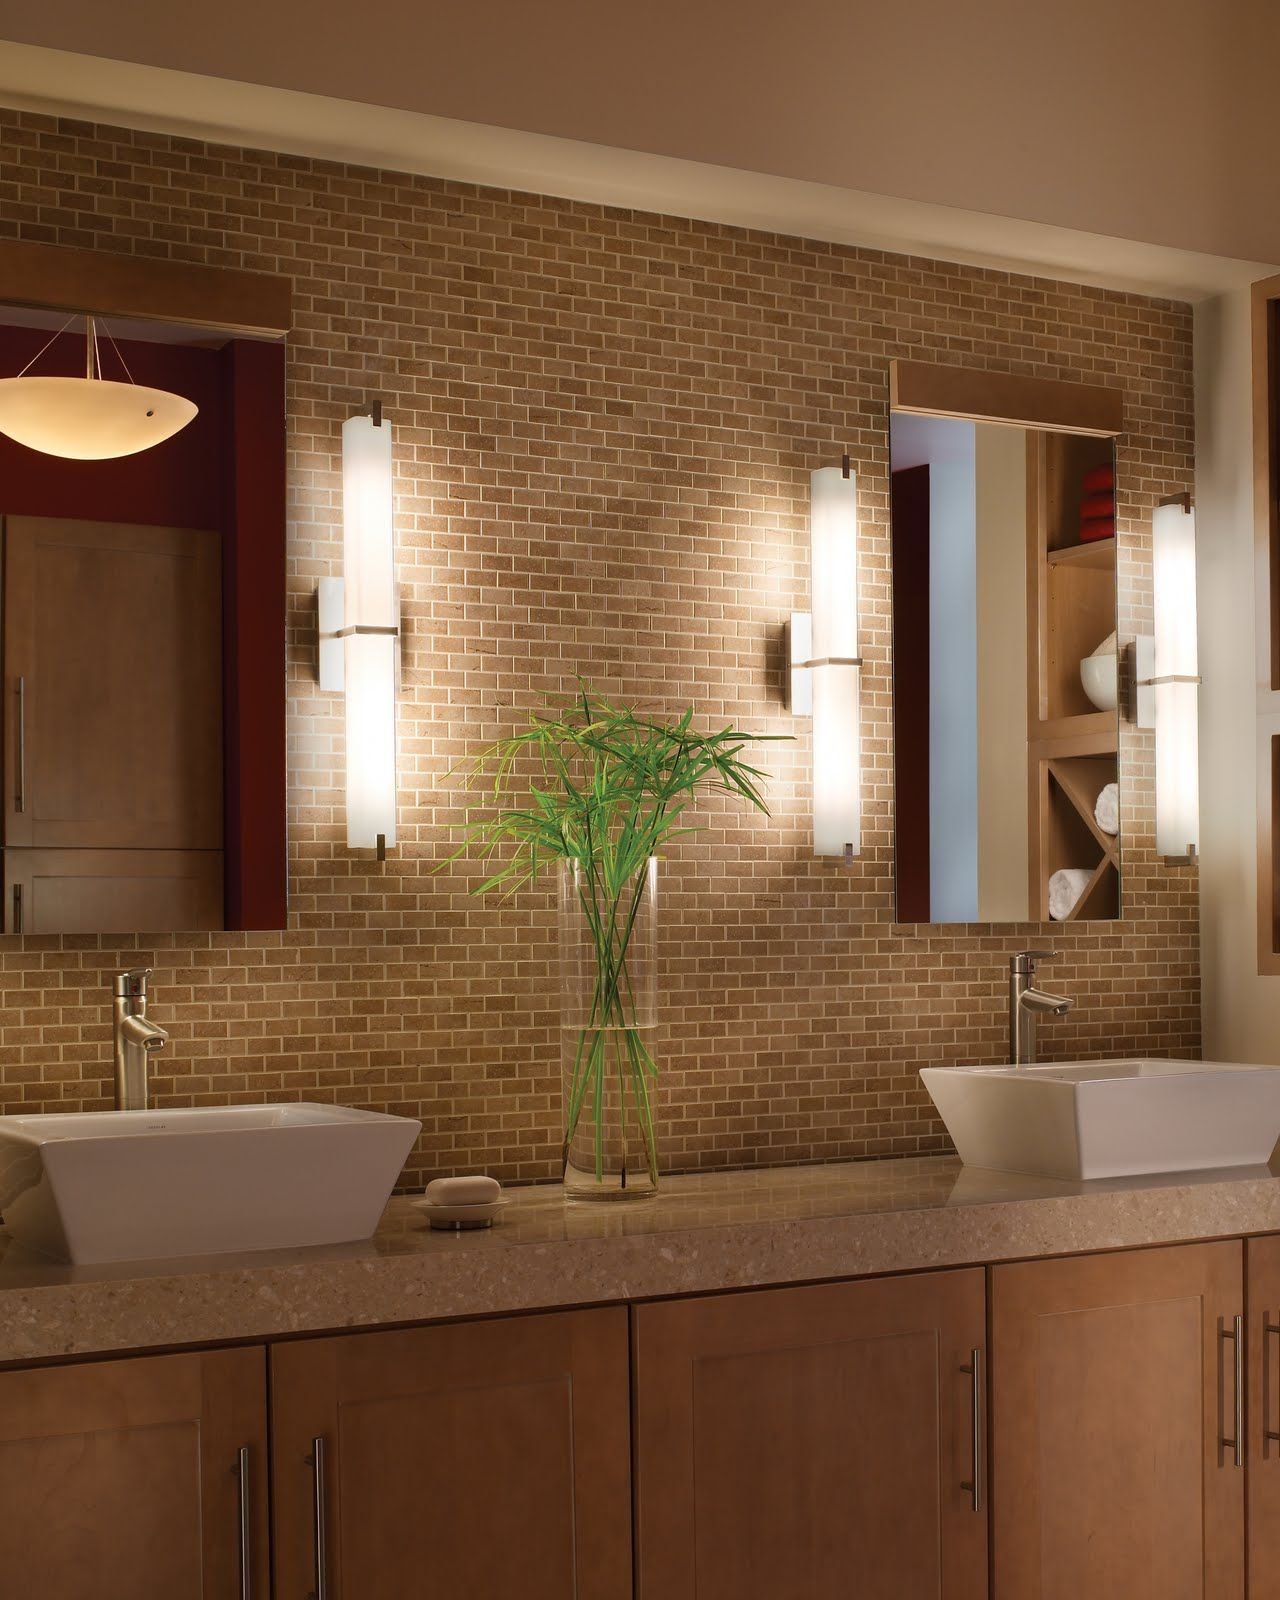 Charmant Bathroom Vanity Lighting Covered In Maximum Aesthetic    Http://www.amazadesign.